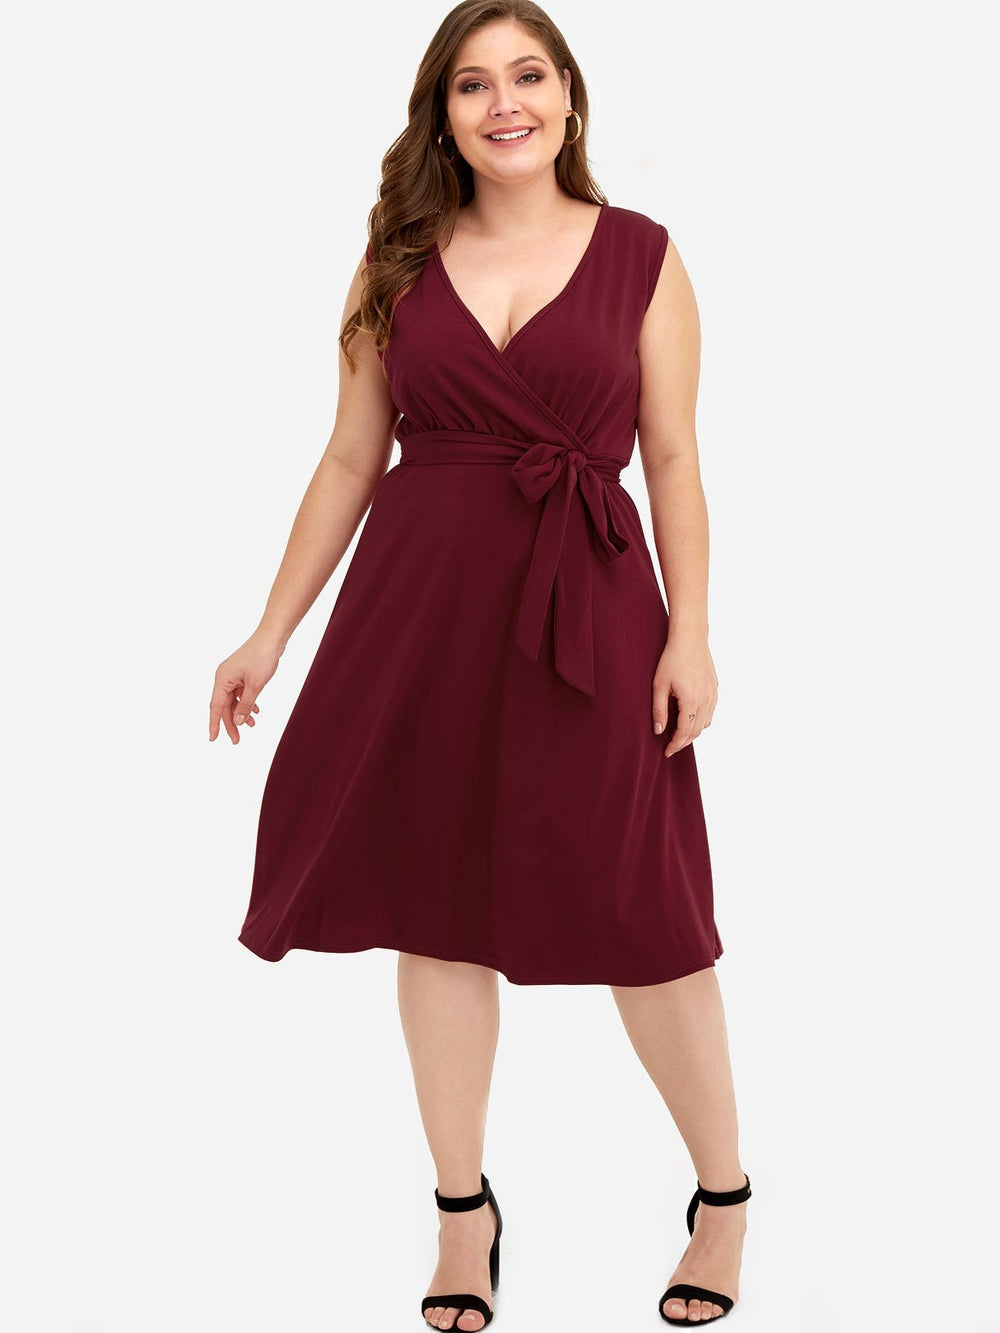 Plus Size Christmas Formal Dresses